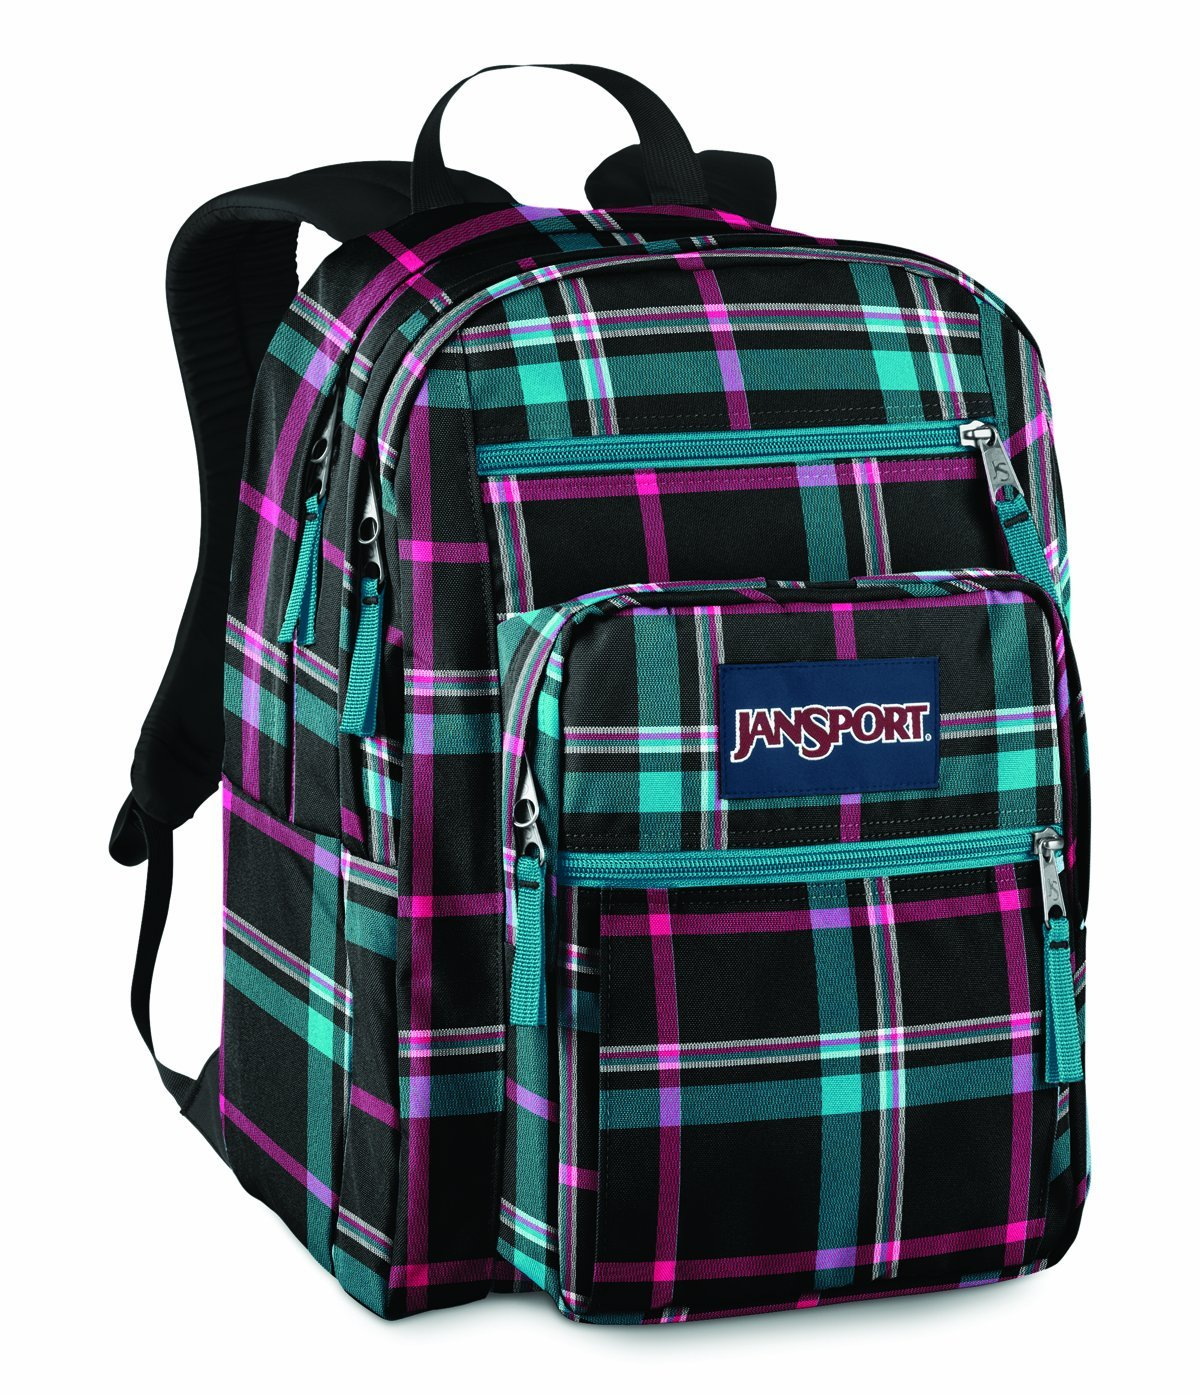 Cute Jansport Backpacks For Girls Ni6P4oVc